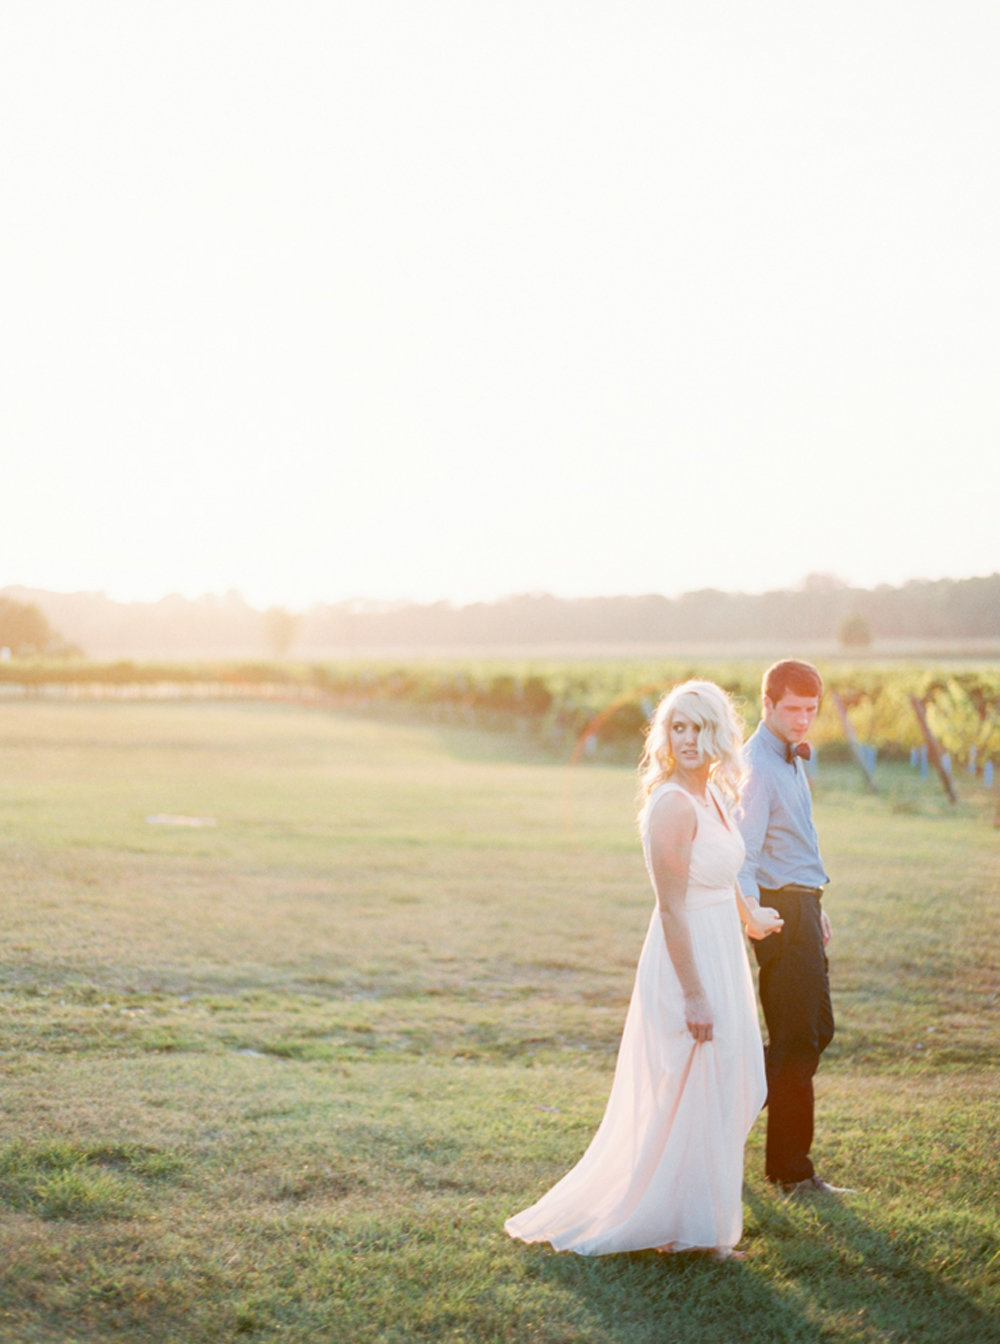 nashville-arrington-vineyard-engagement-session-38 copy